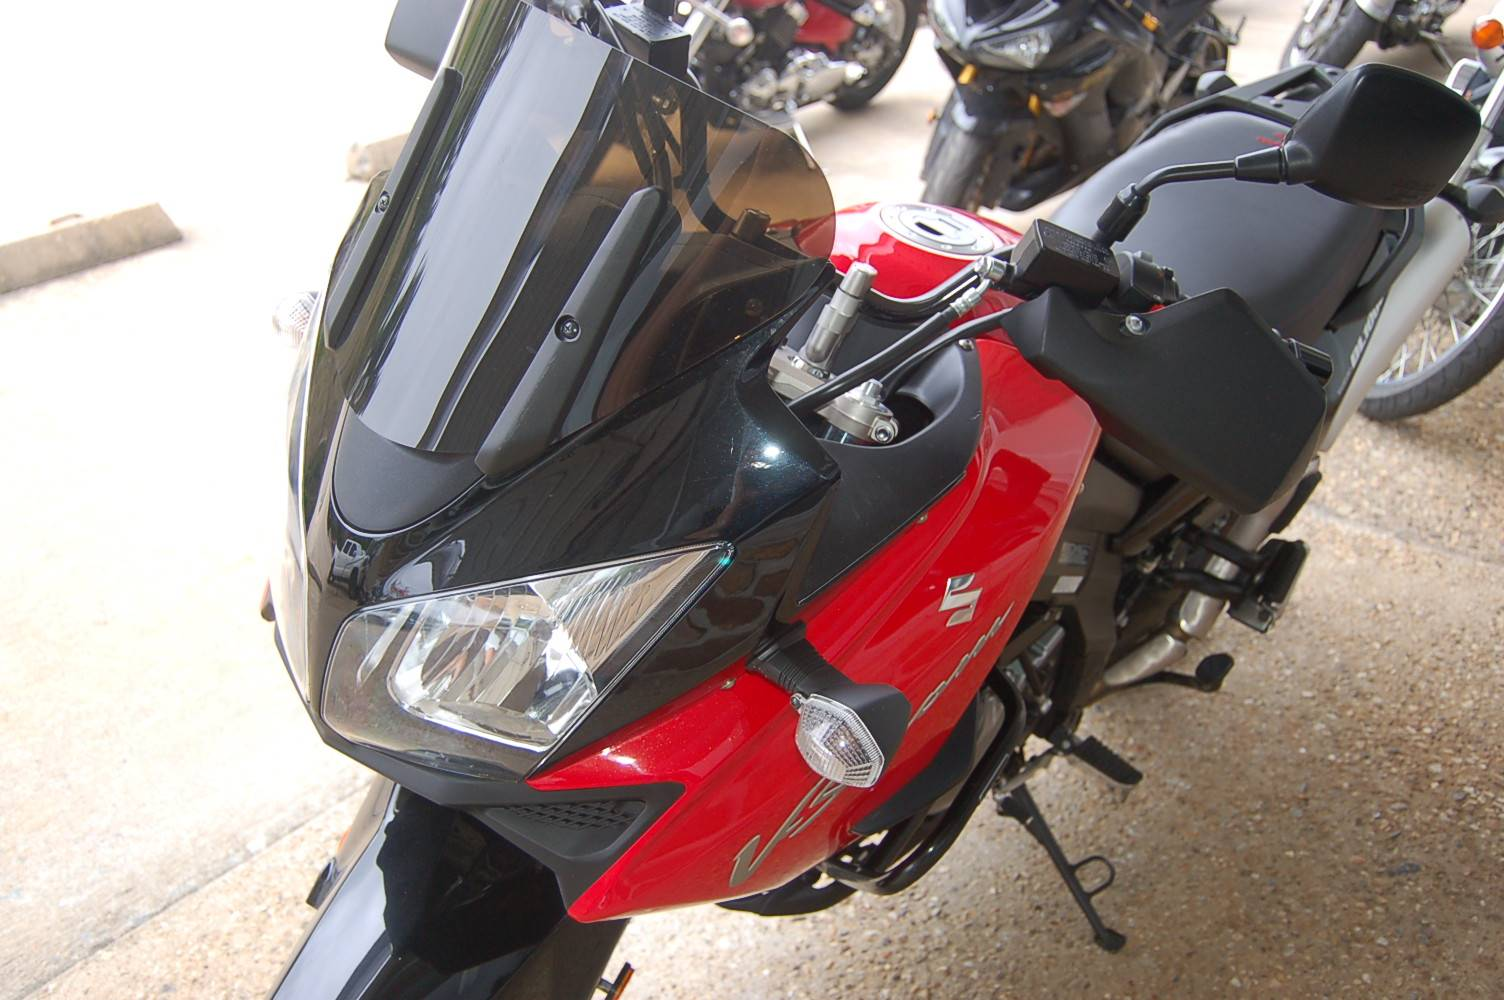 2012 Suzuki V-Strom 1000 in North Little Rock, Arkansas